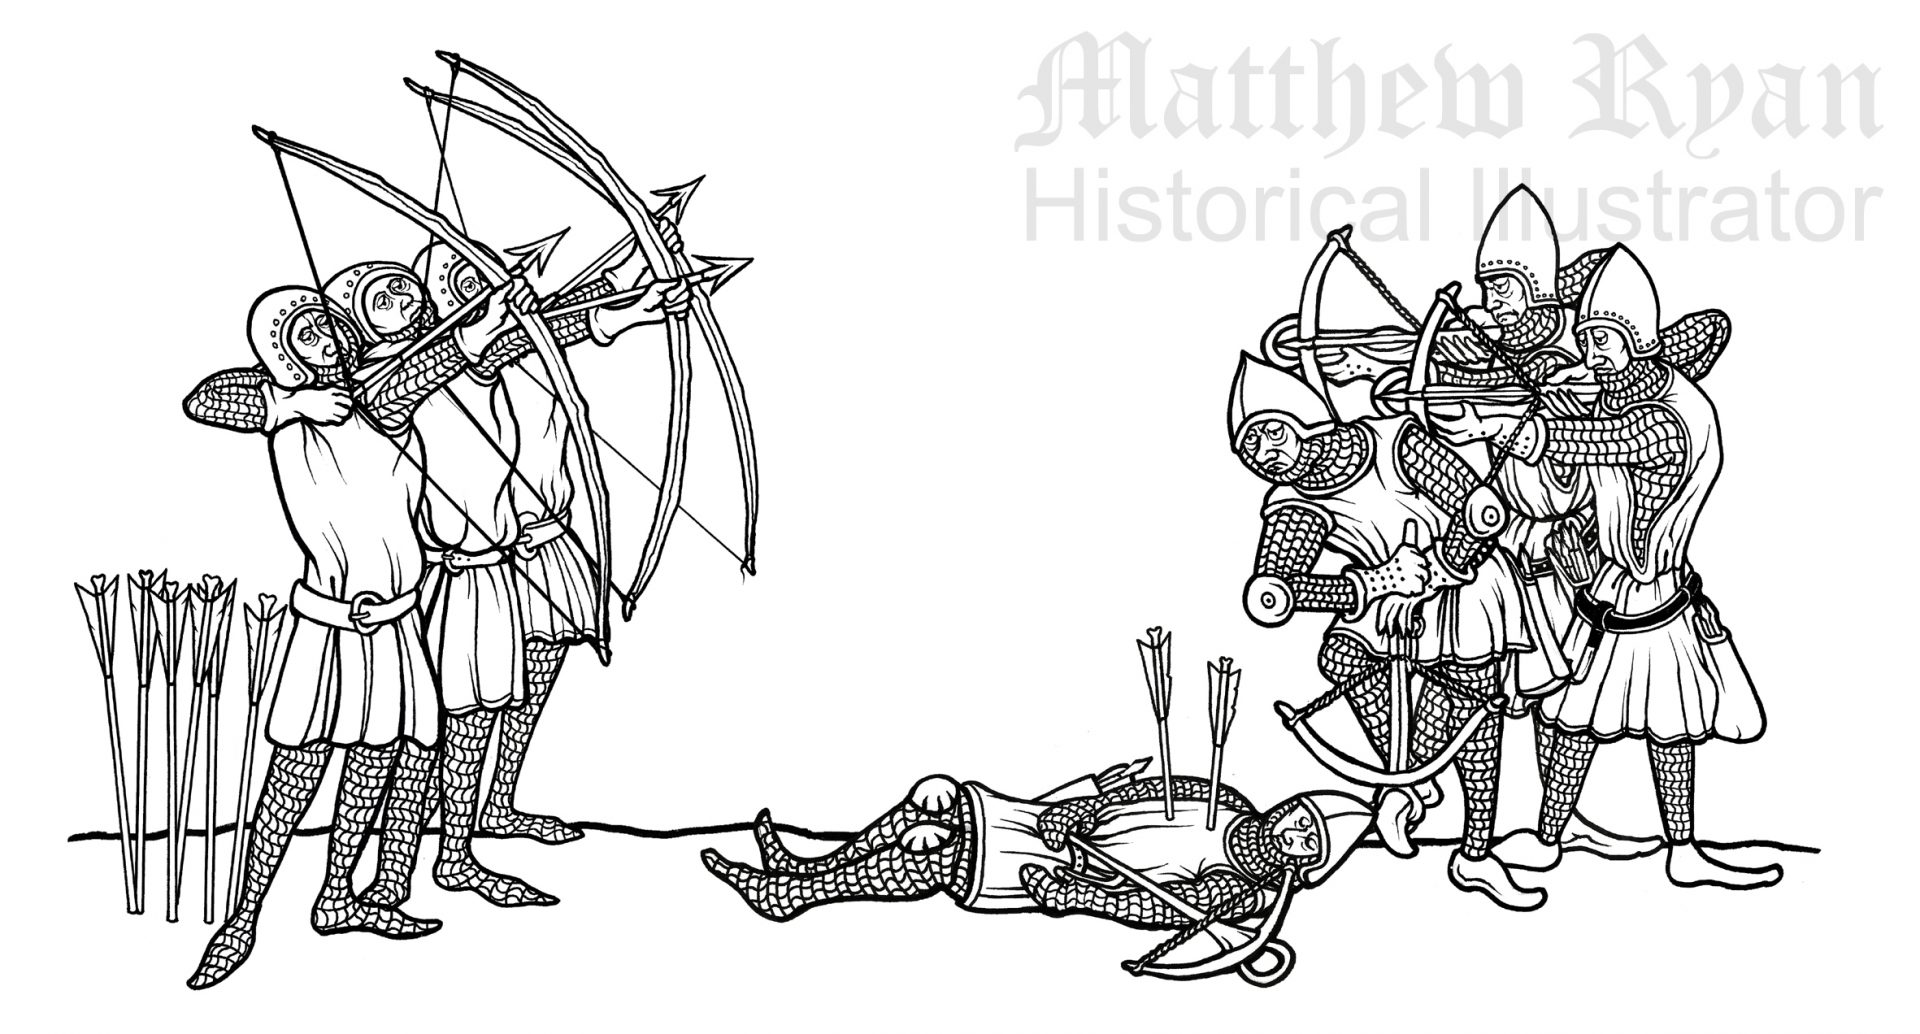 Archers & Crossbow men  | Matthew Ryan